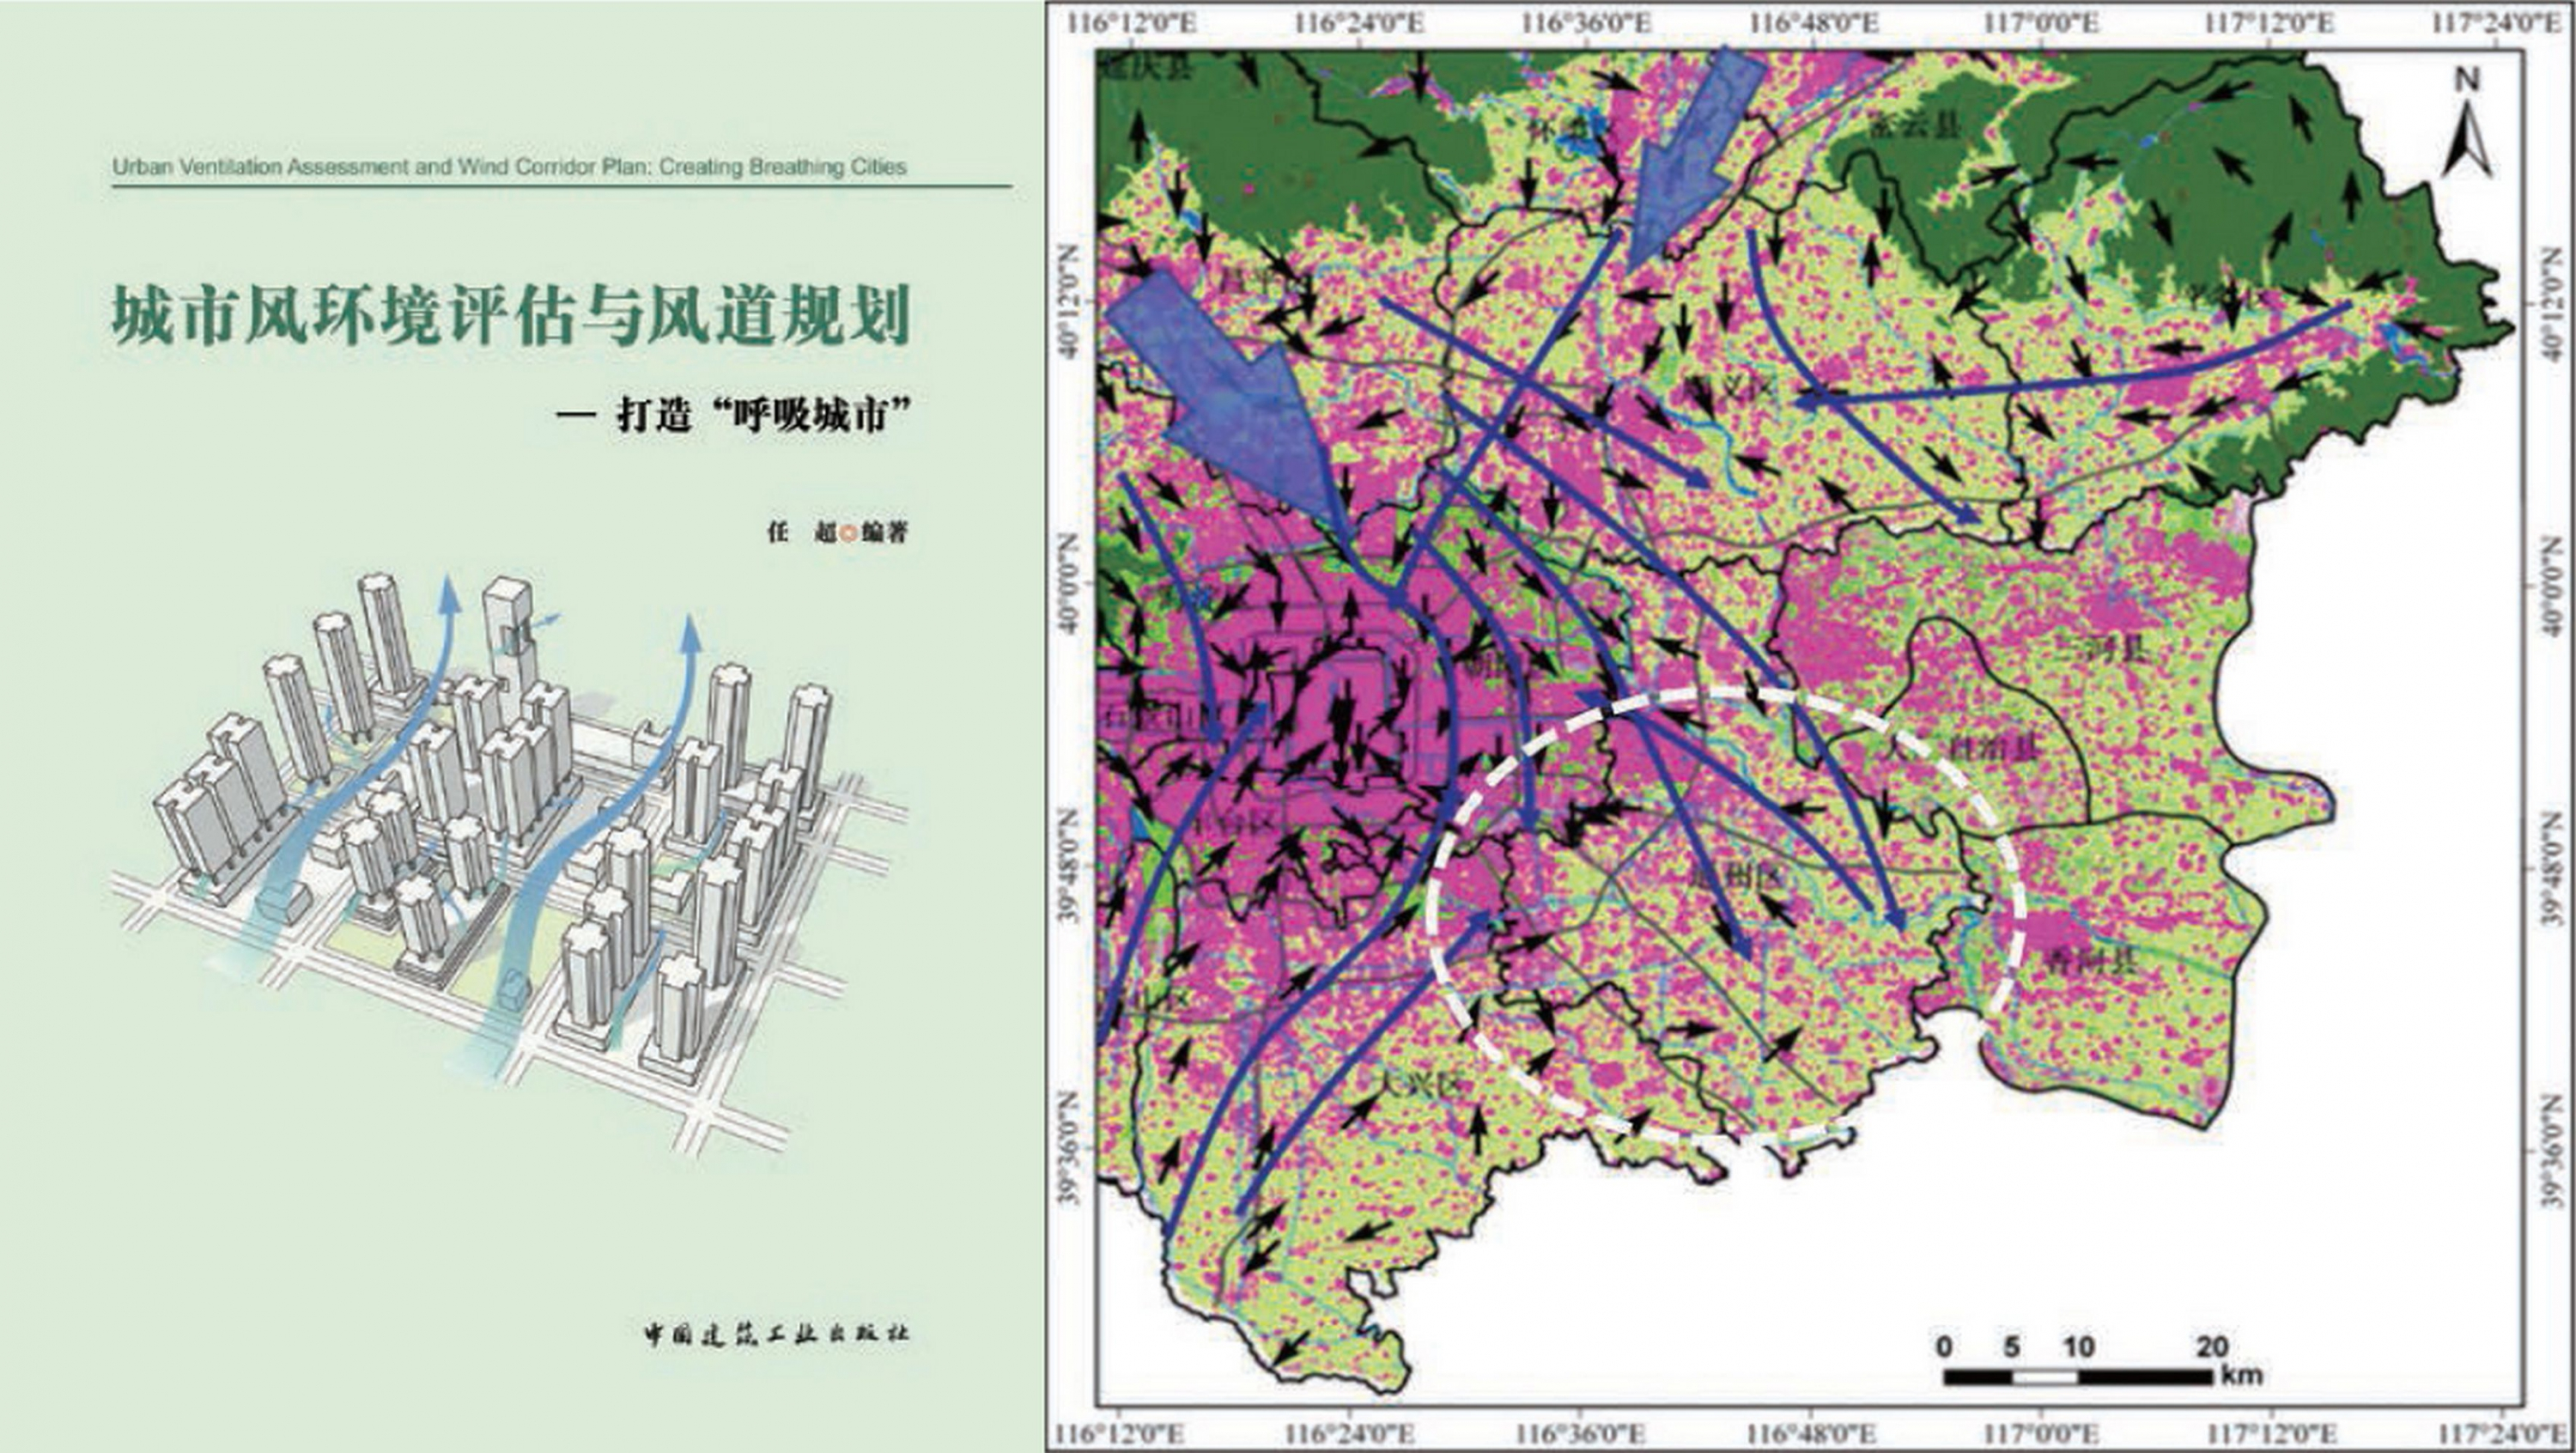 The Urban Ventilation Assessment and Wind Corridor Plan for Chinese Cites